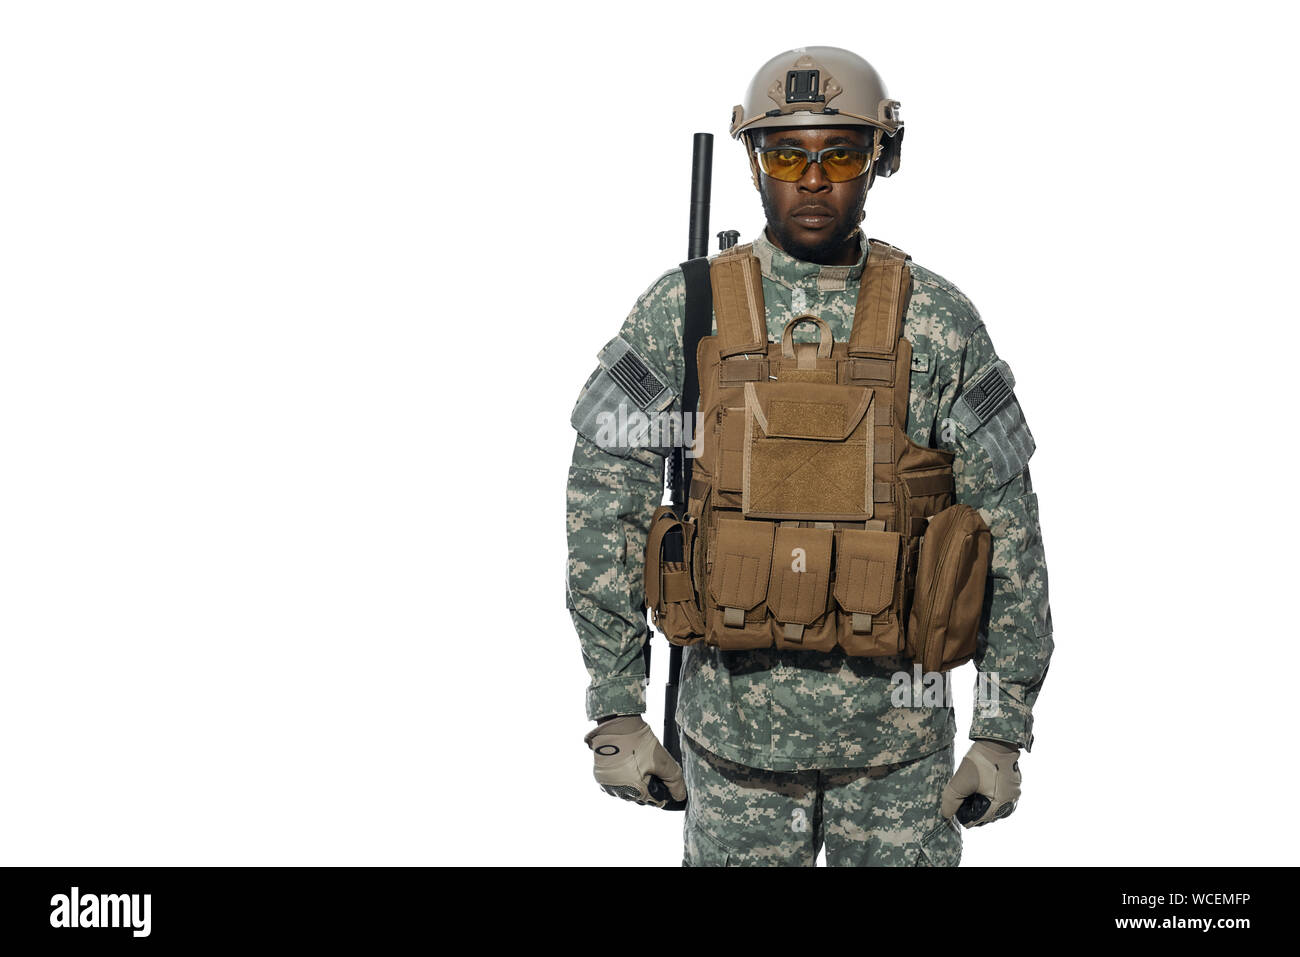 Army Helmet And Gun Stock Photos & Army Helmet And Gun Stock